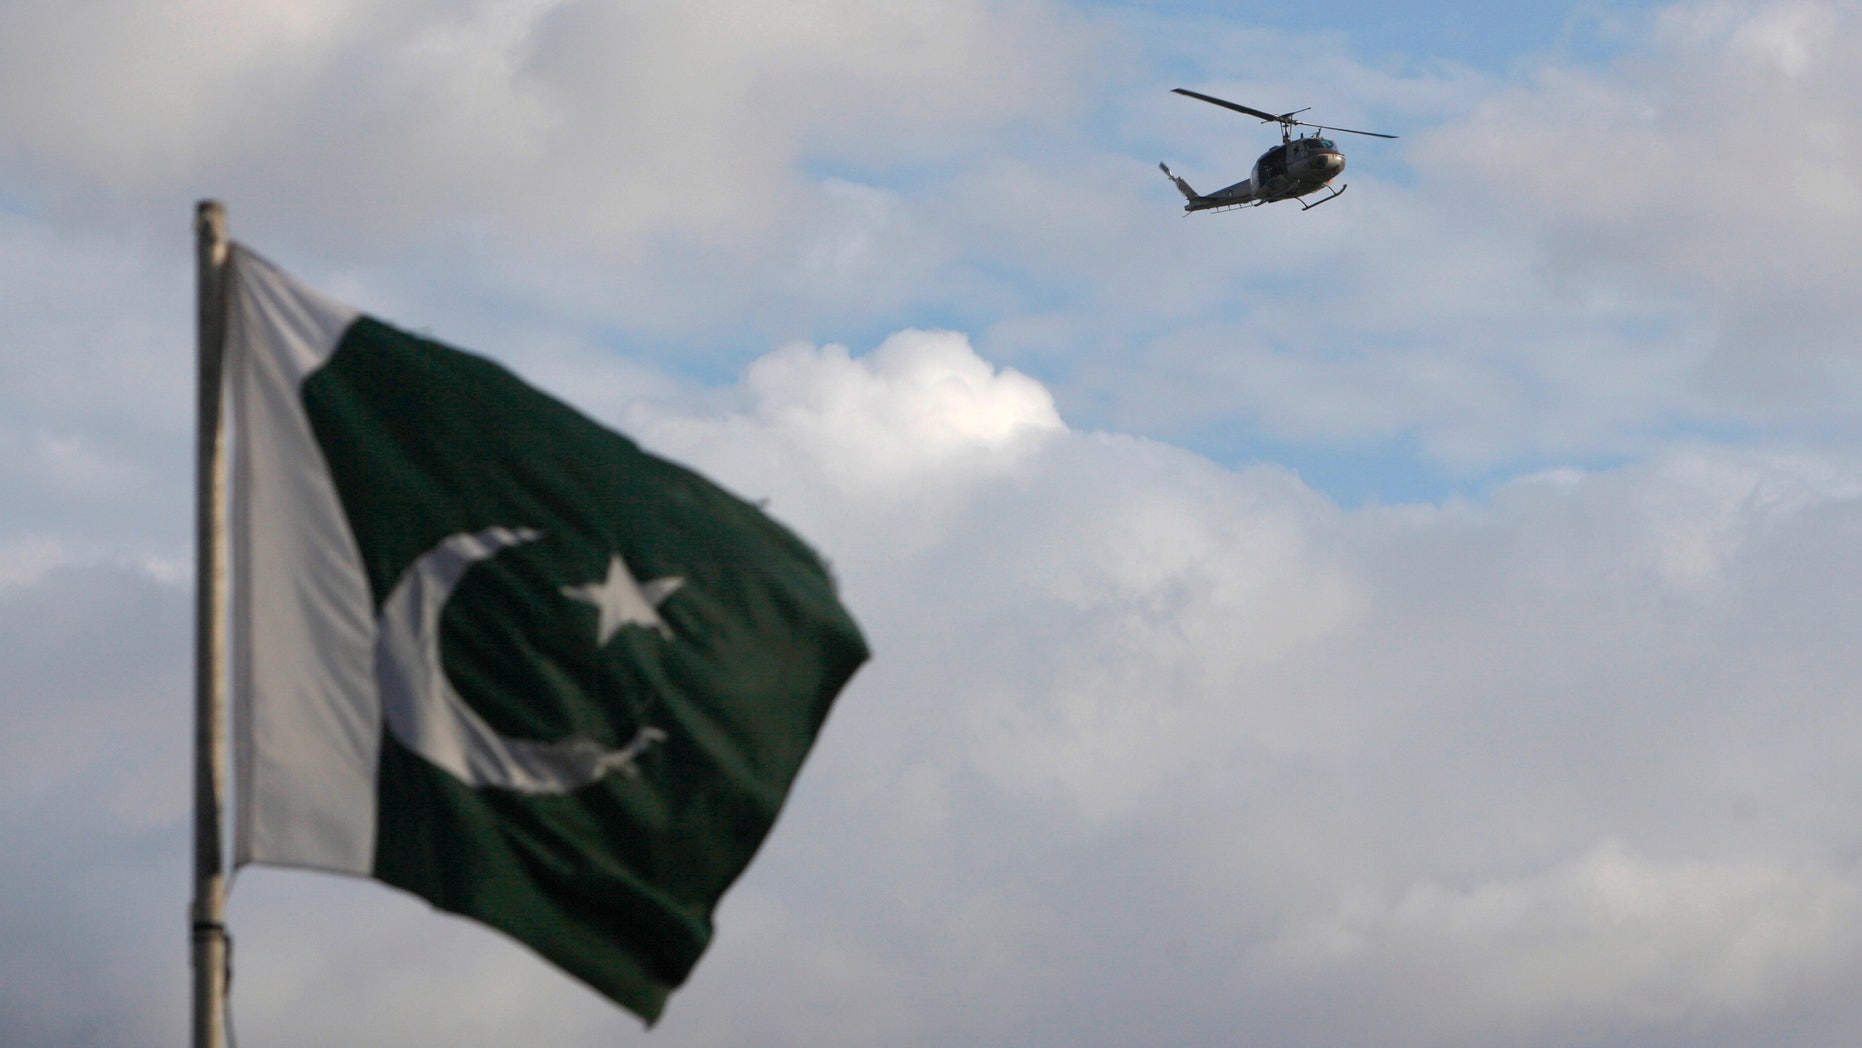 Sept. 2, 2014: A helicopter flies past a Pakistan's national flag in the premises of parliament house during the Revolution March in Islamabad